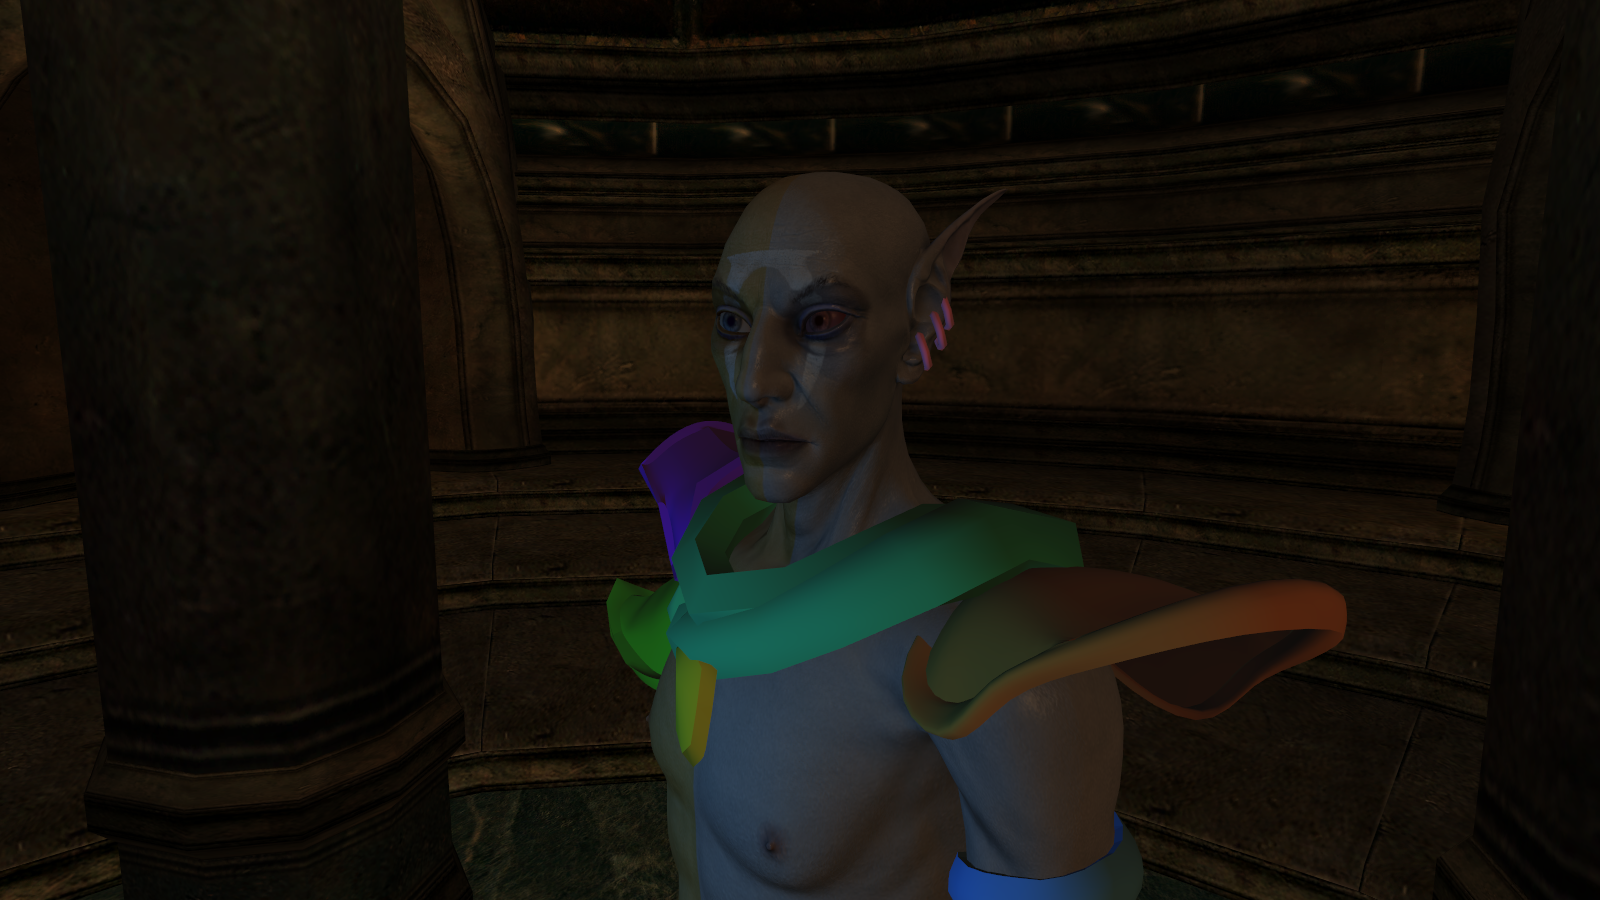 shading in morrowind is really awful